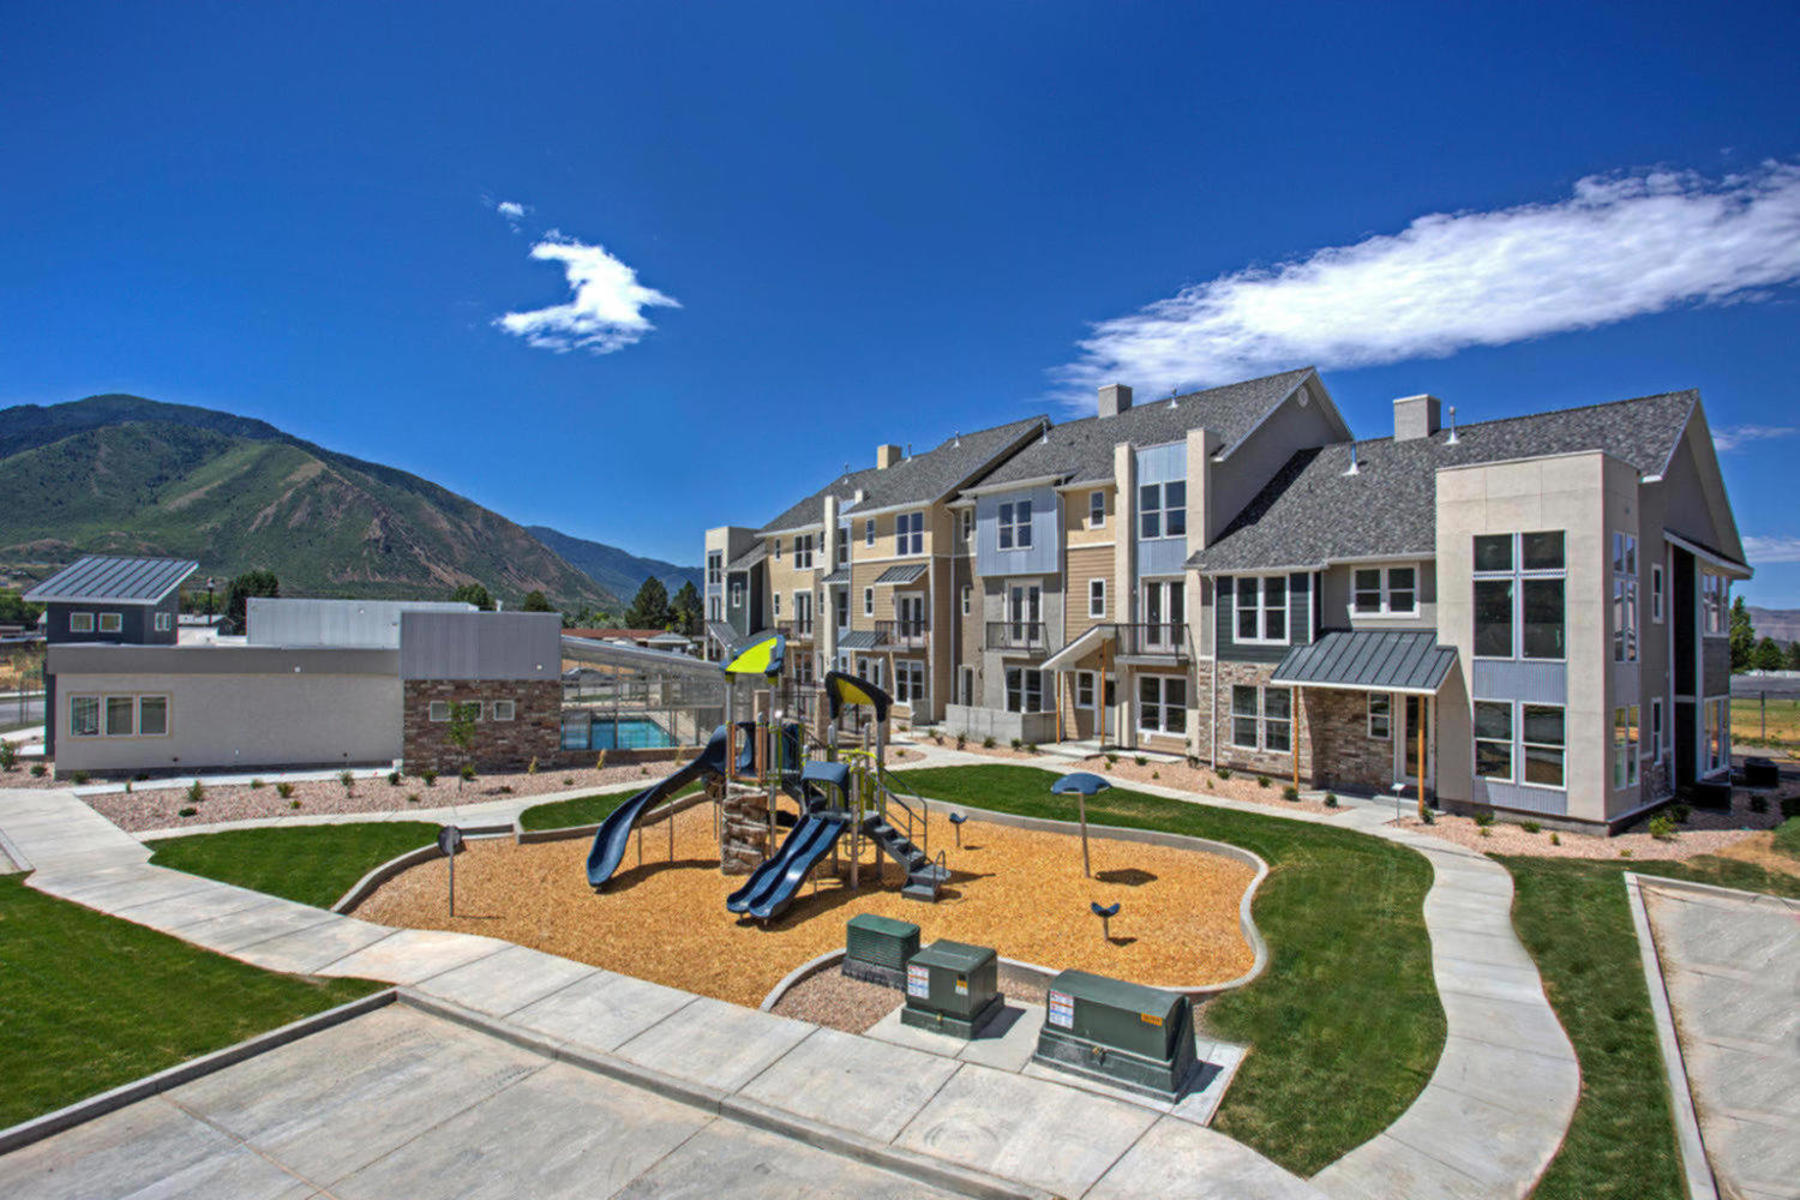 townhouses için Satış at The Manhattan Unit 31 at The Ridge at Spanish Fork 872 South 2560 East, #31, Spanish Fork, Utah 84660 Amerika Birleşik Devletleri